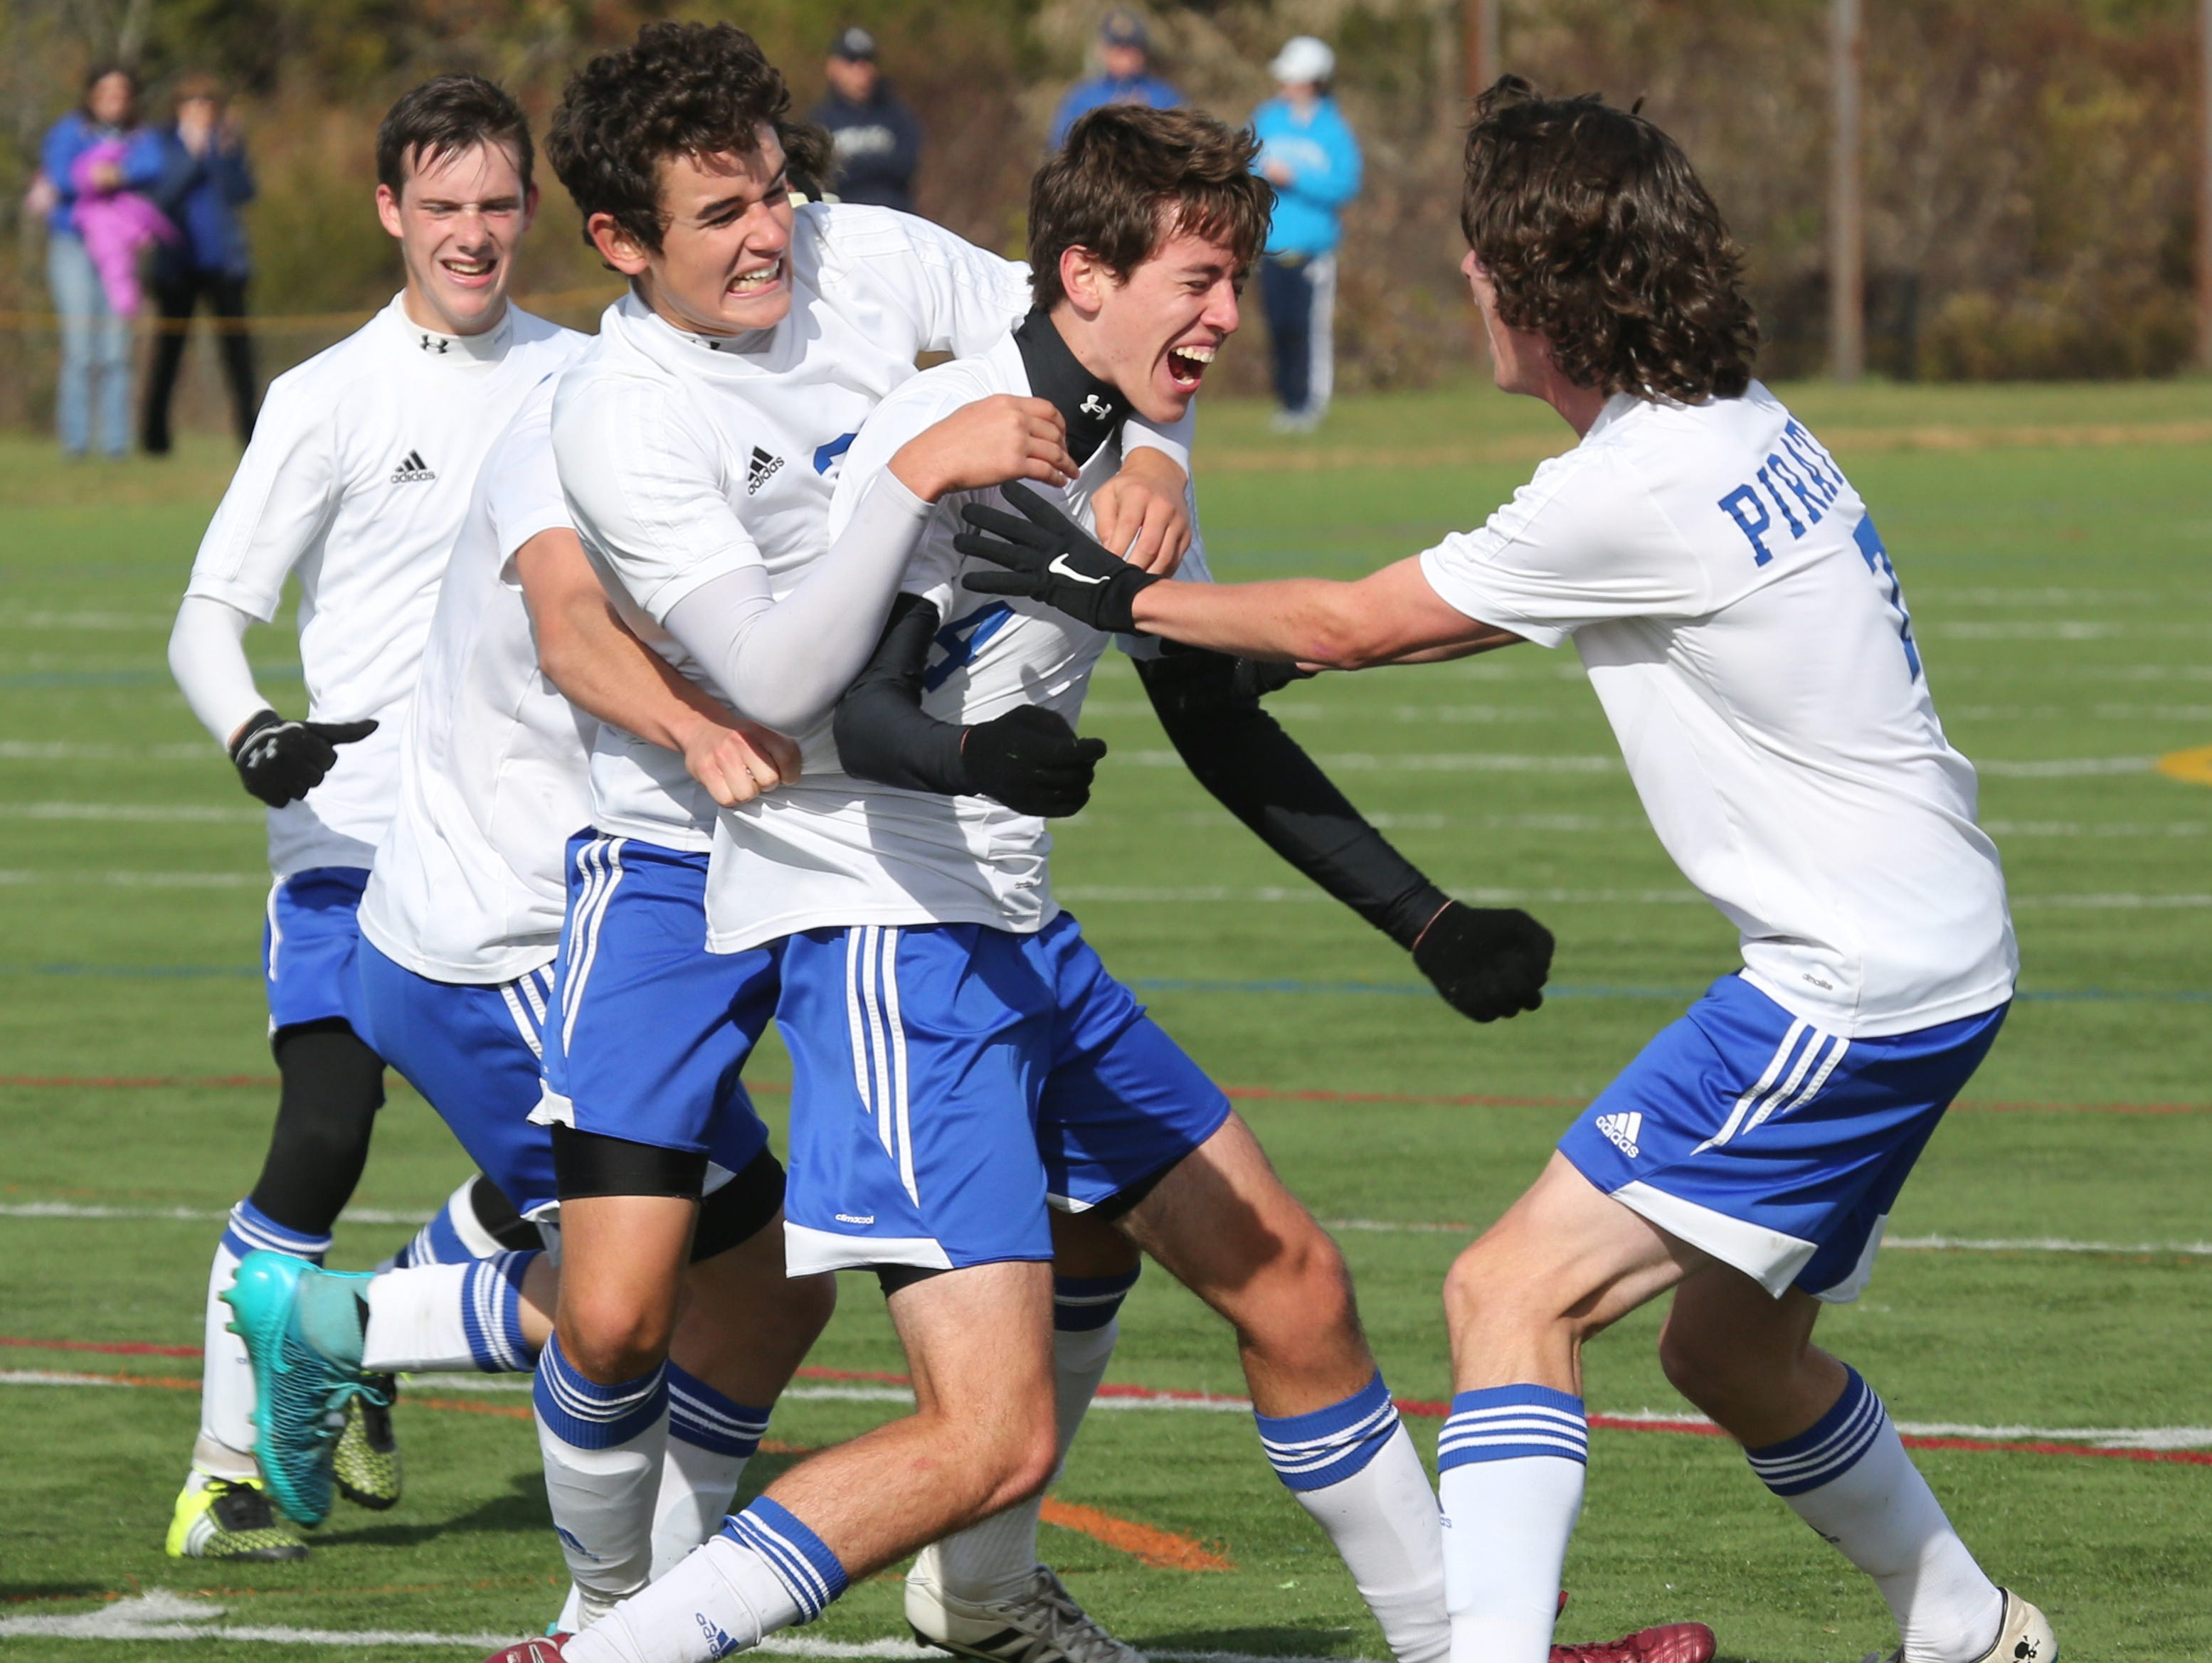 Teammates swarm Pearl River's Ian Haley after scoring a second goal during action in the Section One Class A boys final at Arlington High School, Oct. 31, 2015.